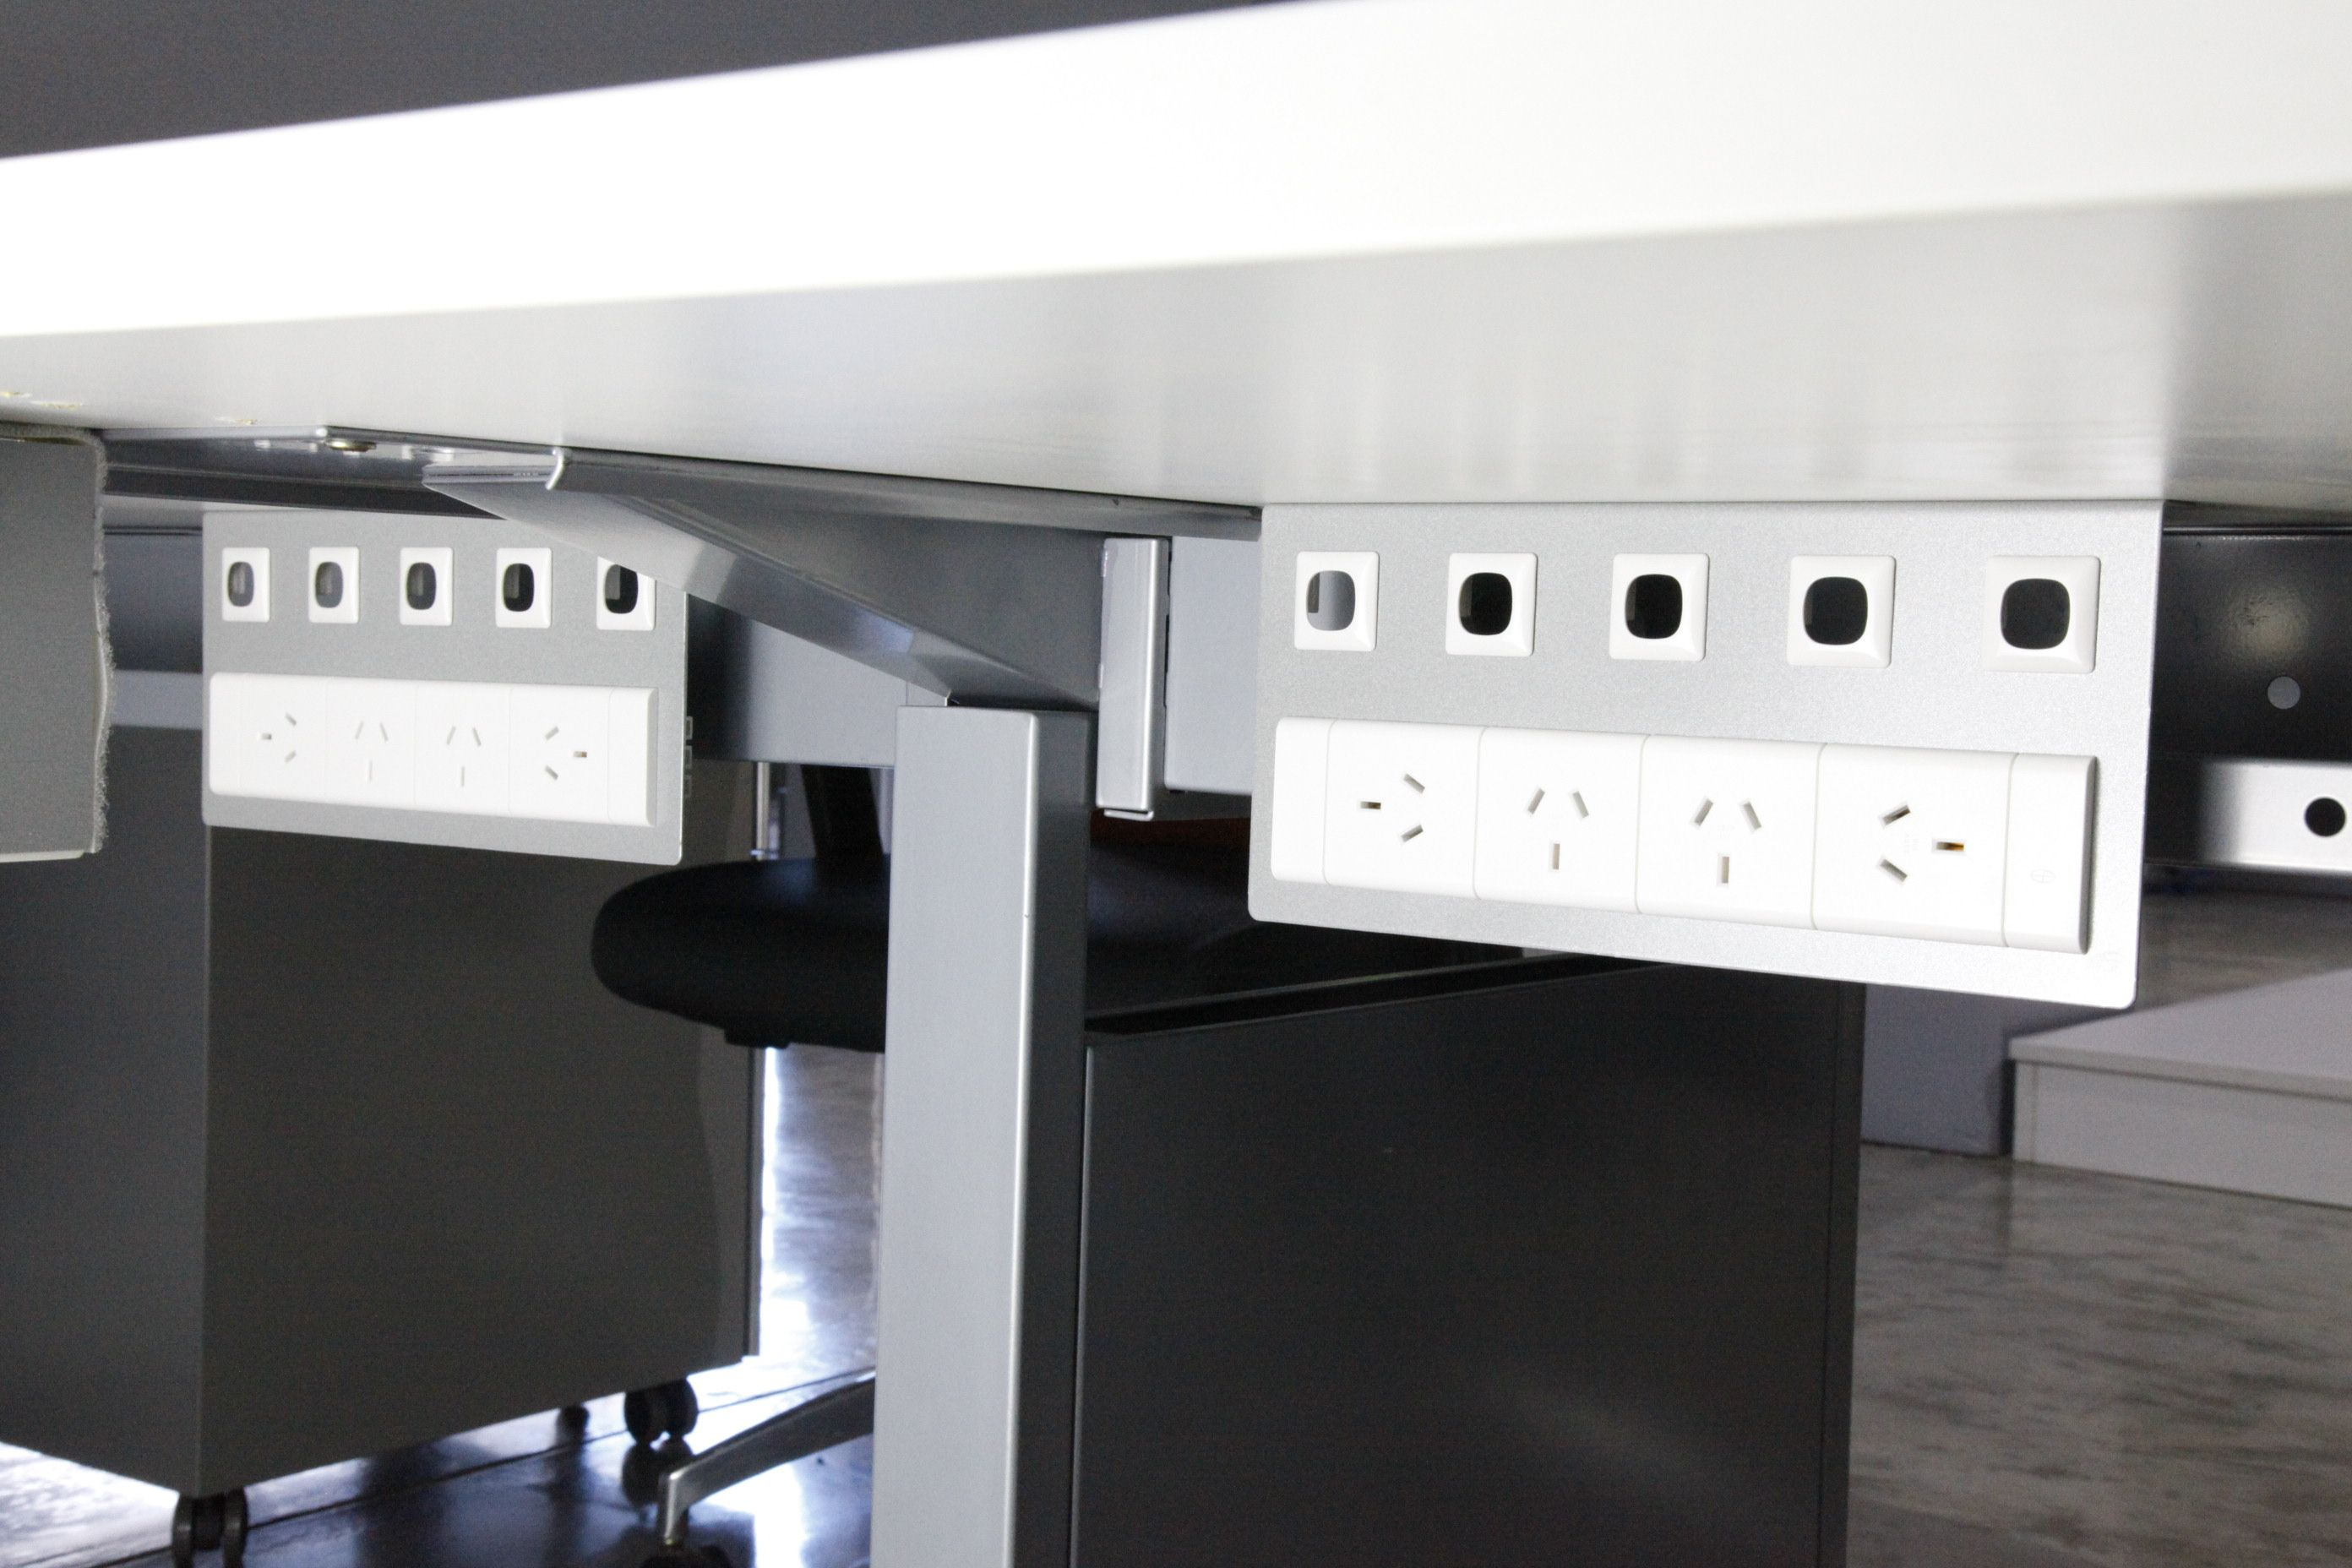 Mounting Plates Were Installed For An Under Desk Power Solutions